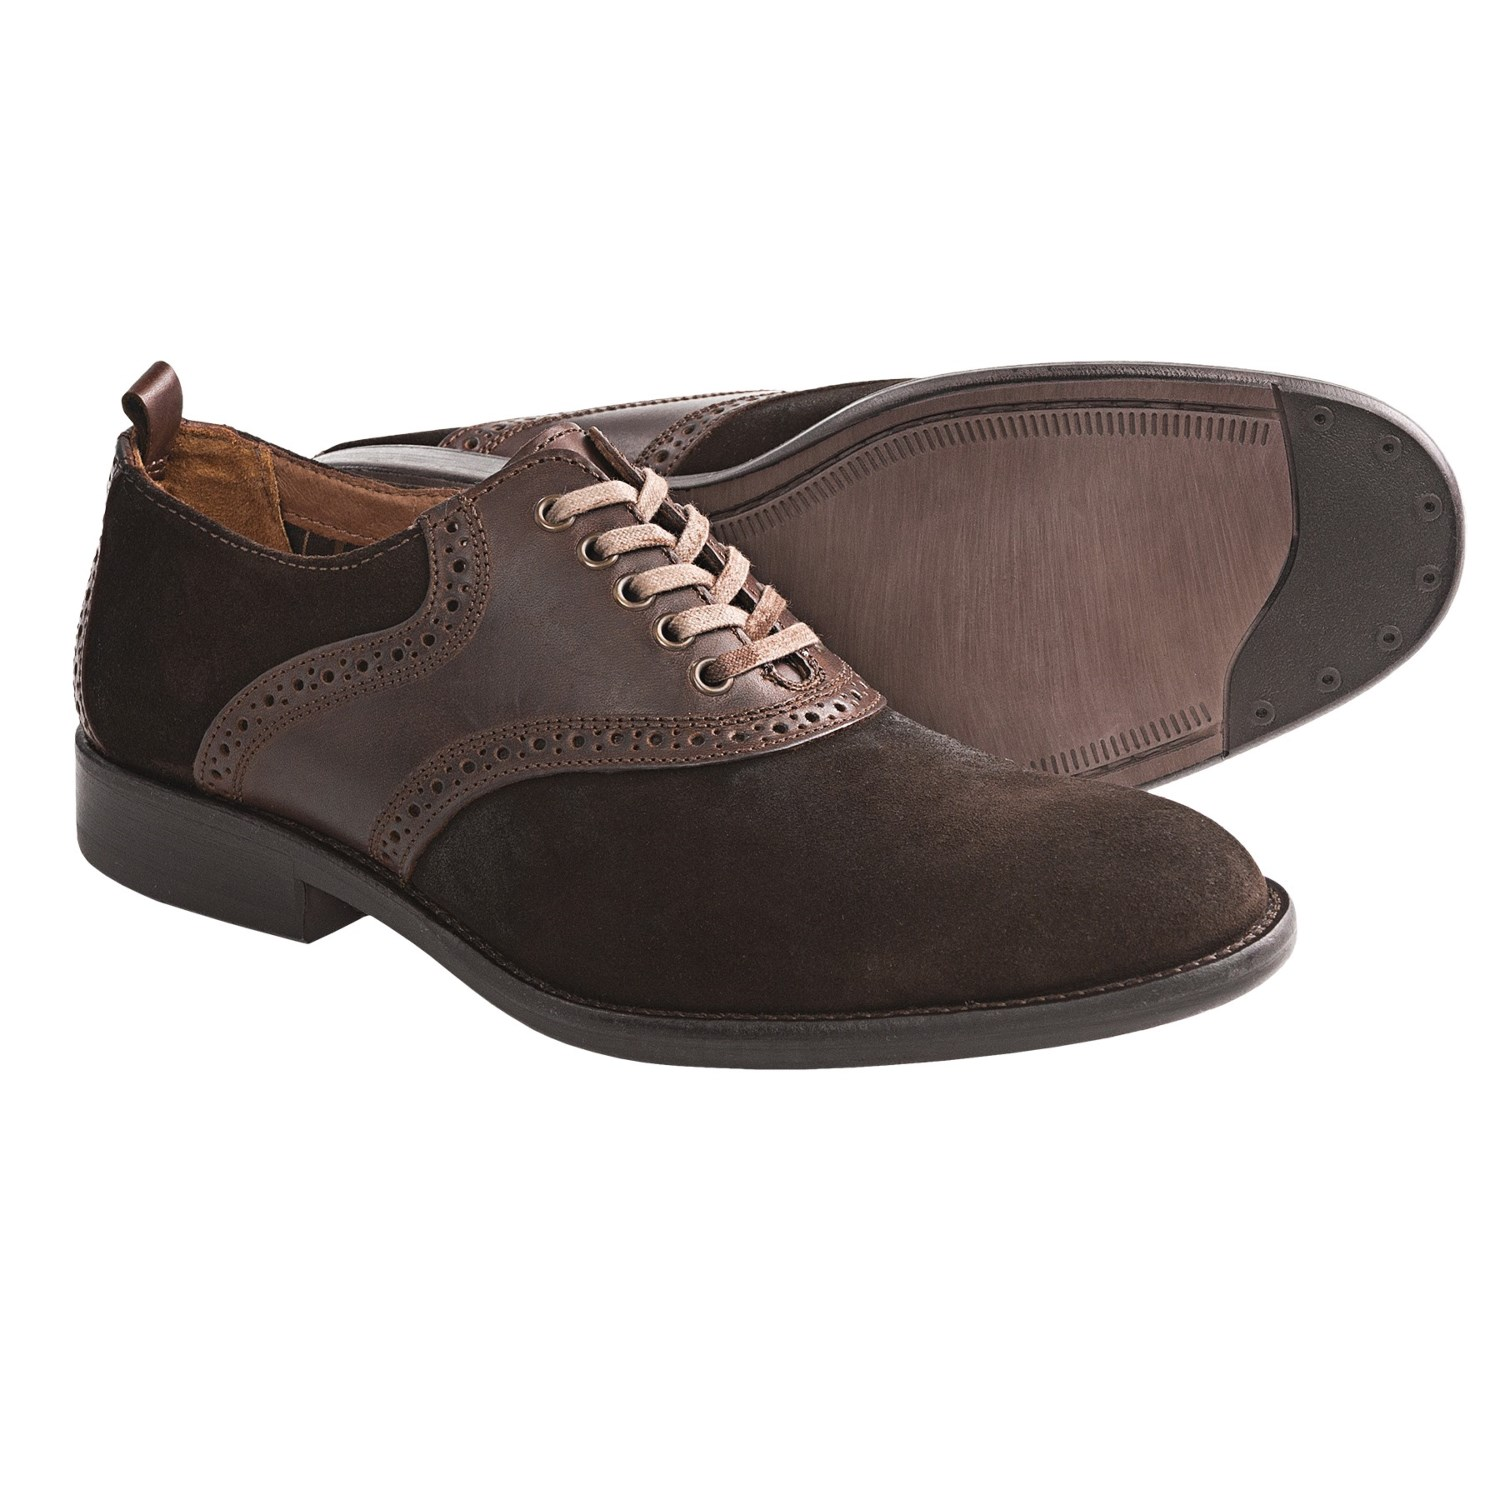 johnston and murphy decatur saddle shoes oxfords for